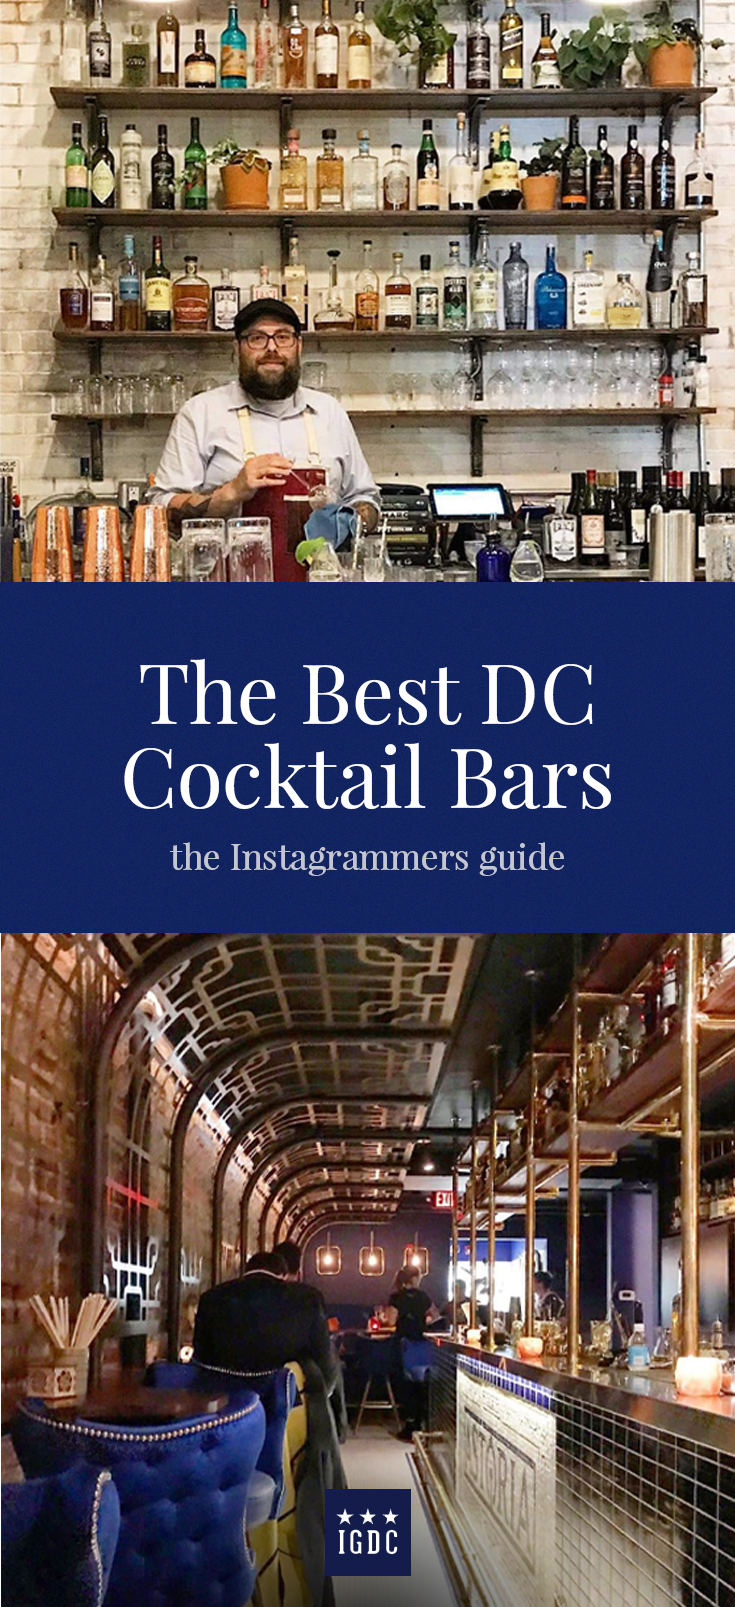 Best Cocktail Bars in Washington DC // igdcofficial.com